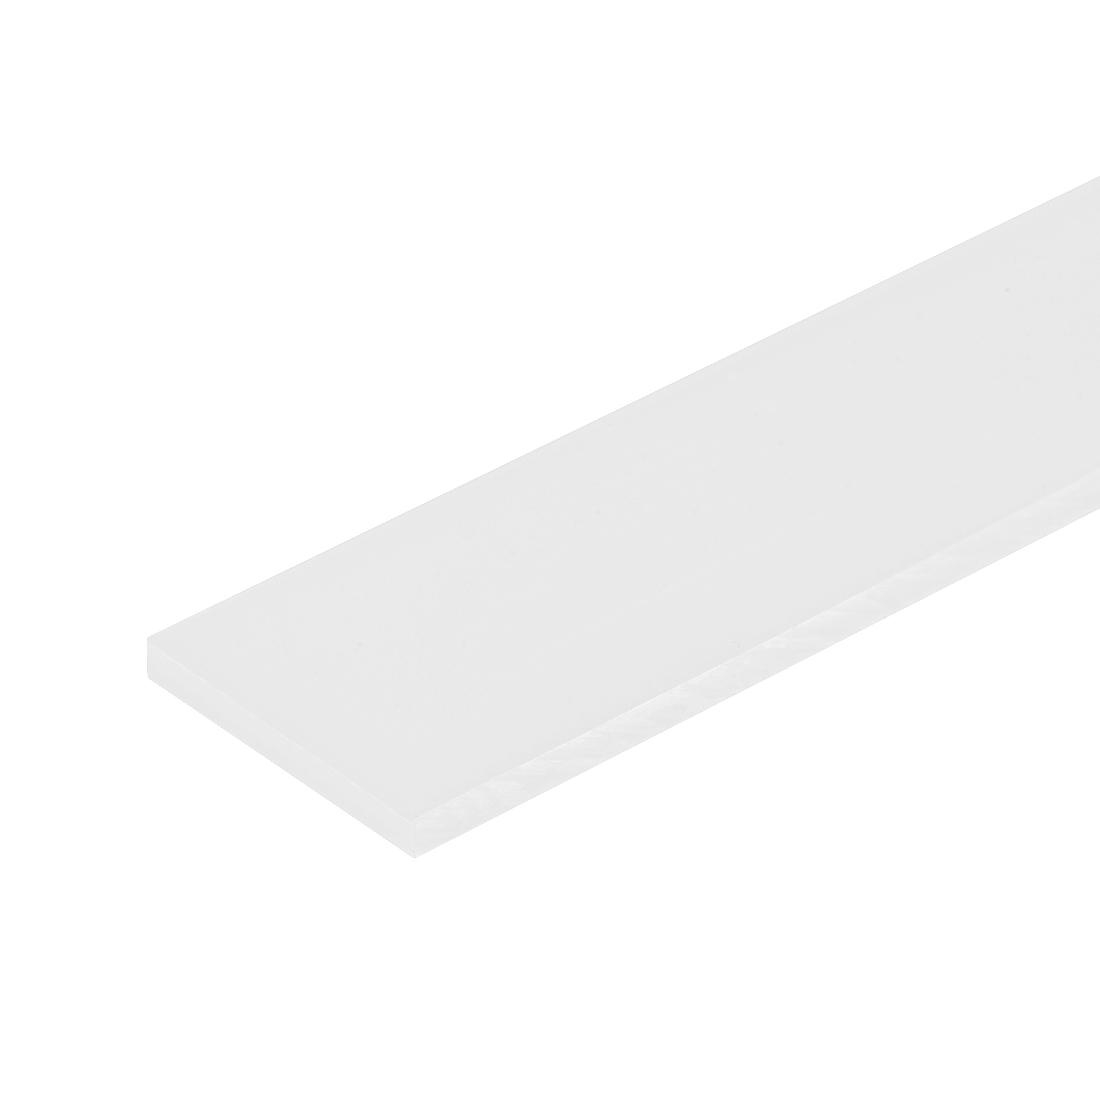 "Nylon Plastic Welding Rod,12"" Length, White Engineering Plastic Retangle Bar"